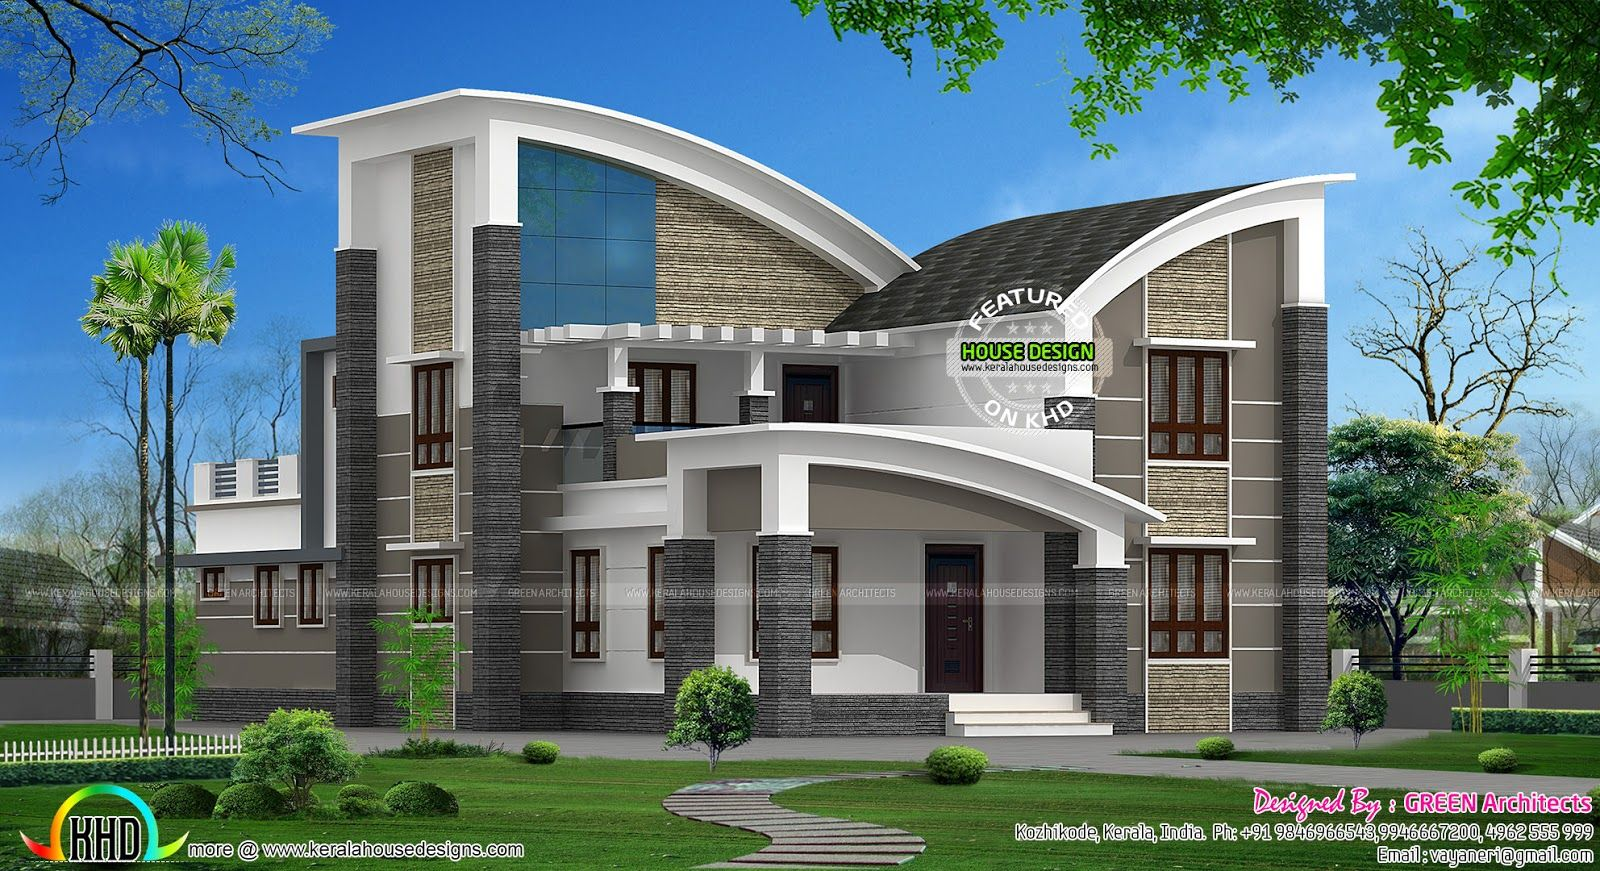 Modern style curved roof villa home inspiration for Elevated modern house design